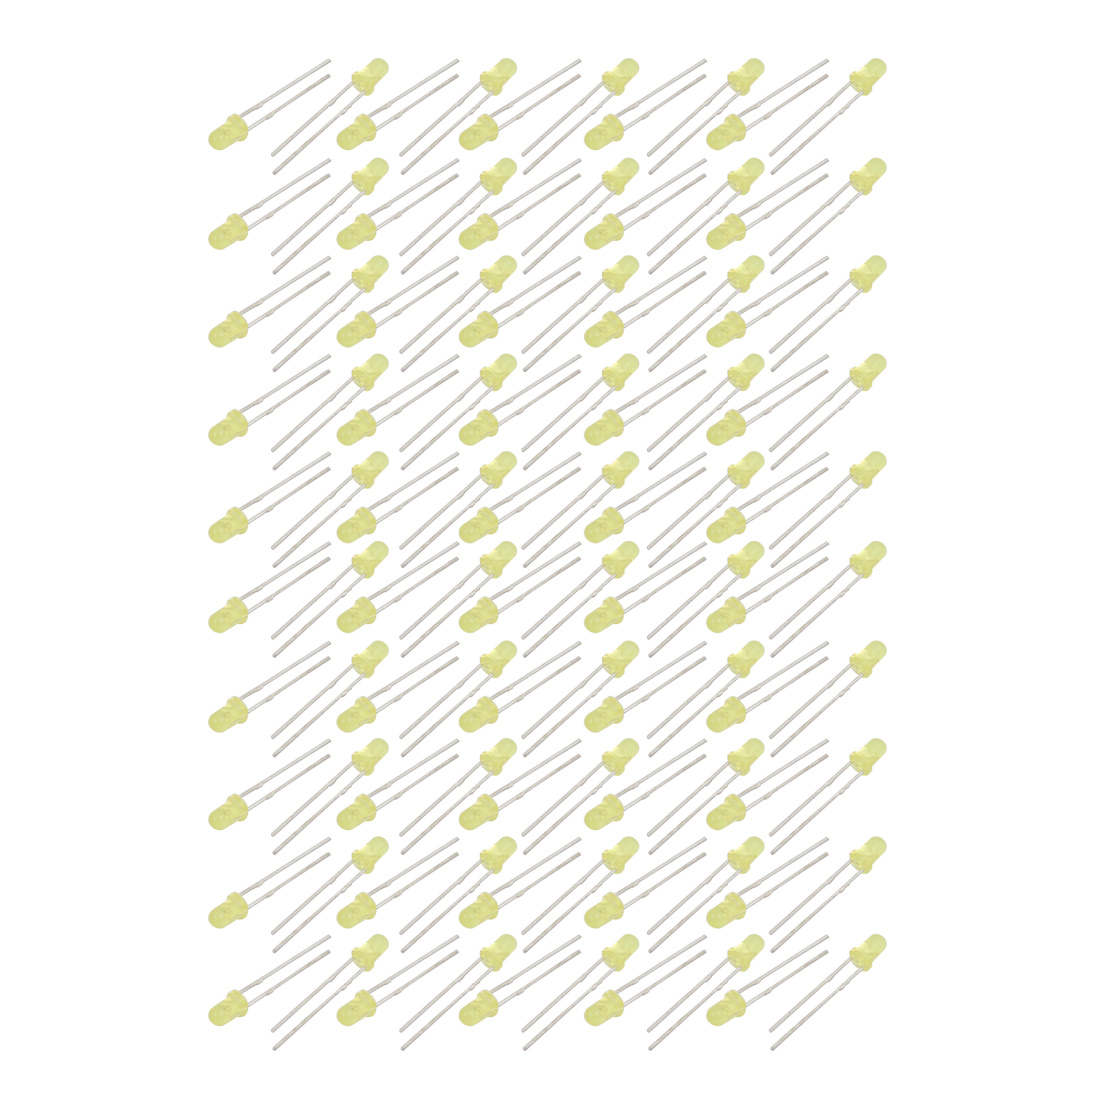 100 Pcs DC 1.9-2.2V 20mA Bright LED Lamps 3mm Dia. Yellow Light Emitting Diodes